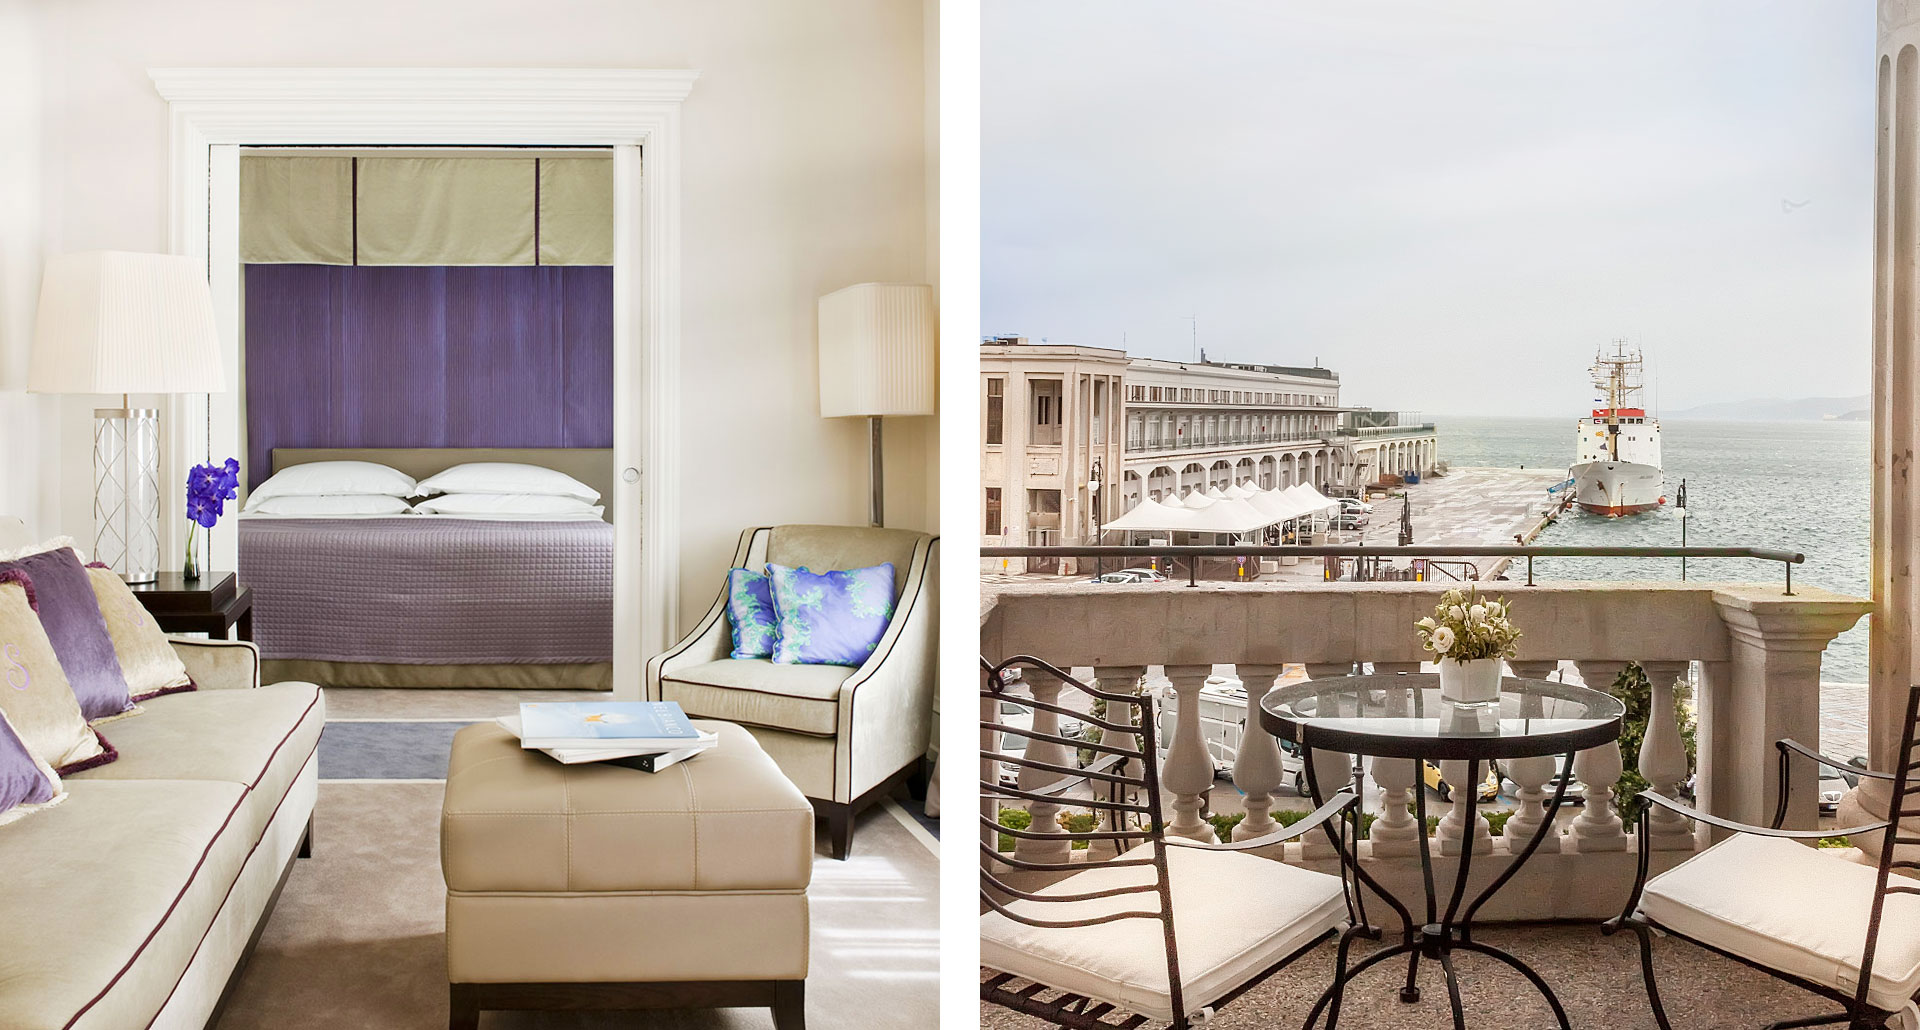 Starhotels Savoia Excelsior Palace - boutique hotel in Trieste